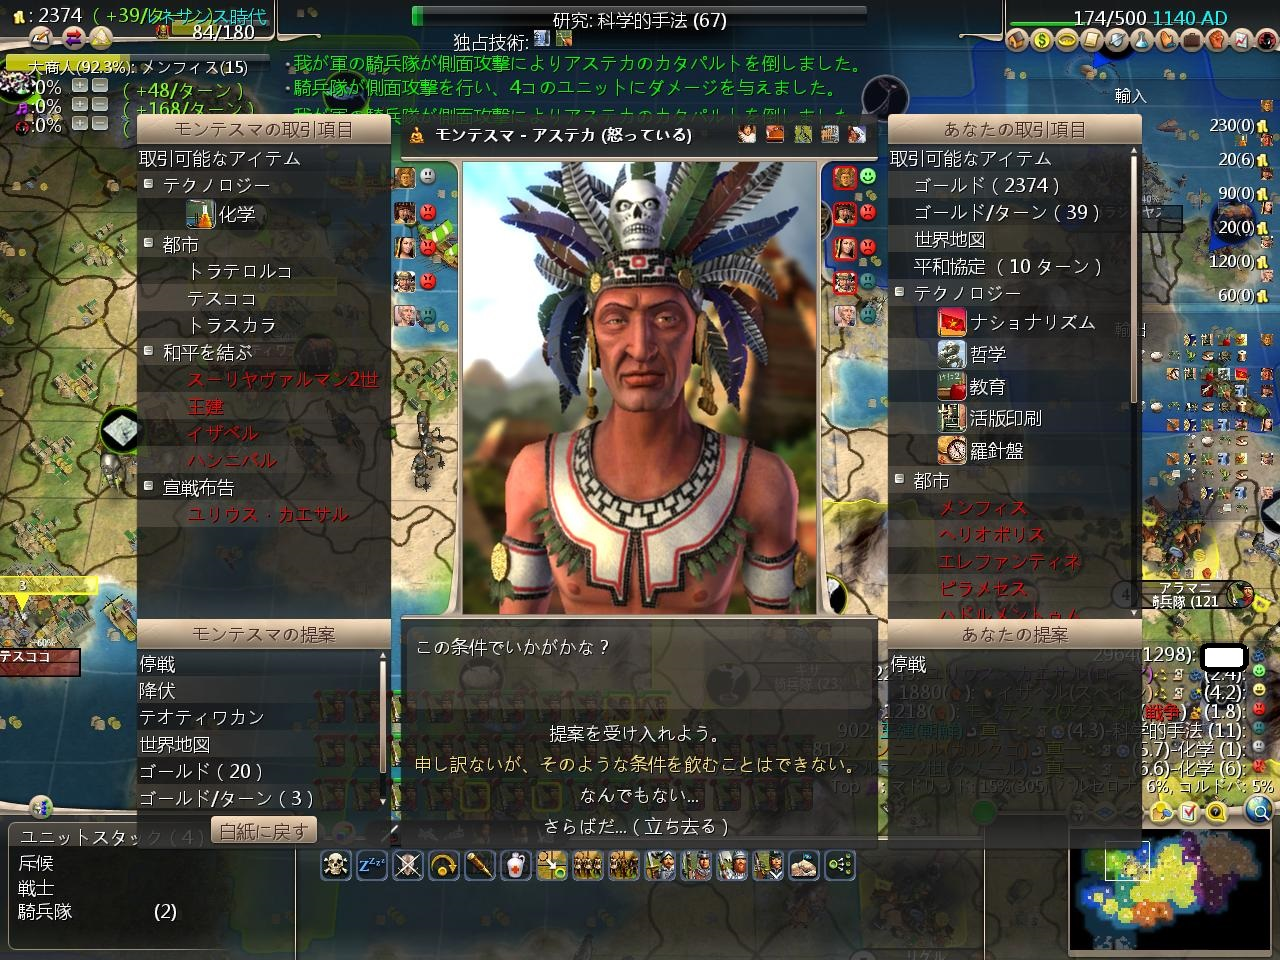 Civ4ScreenShot2217.JPG